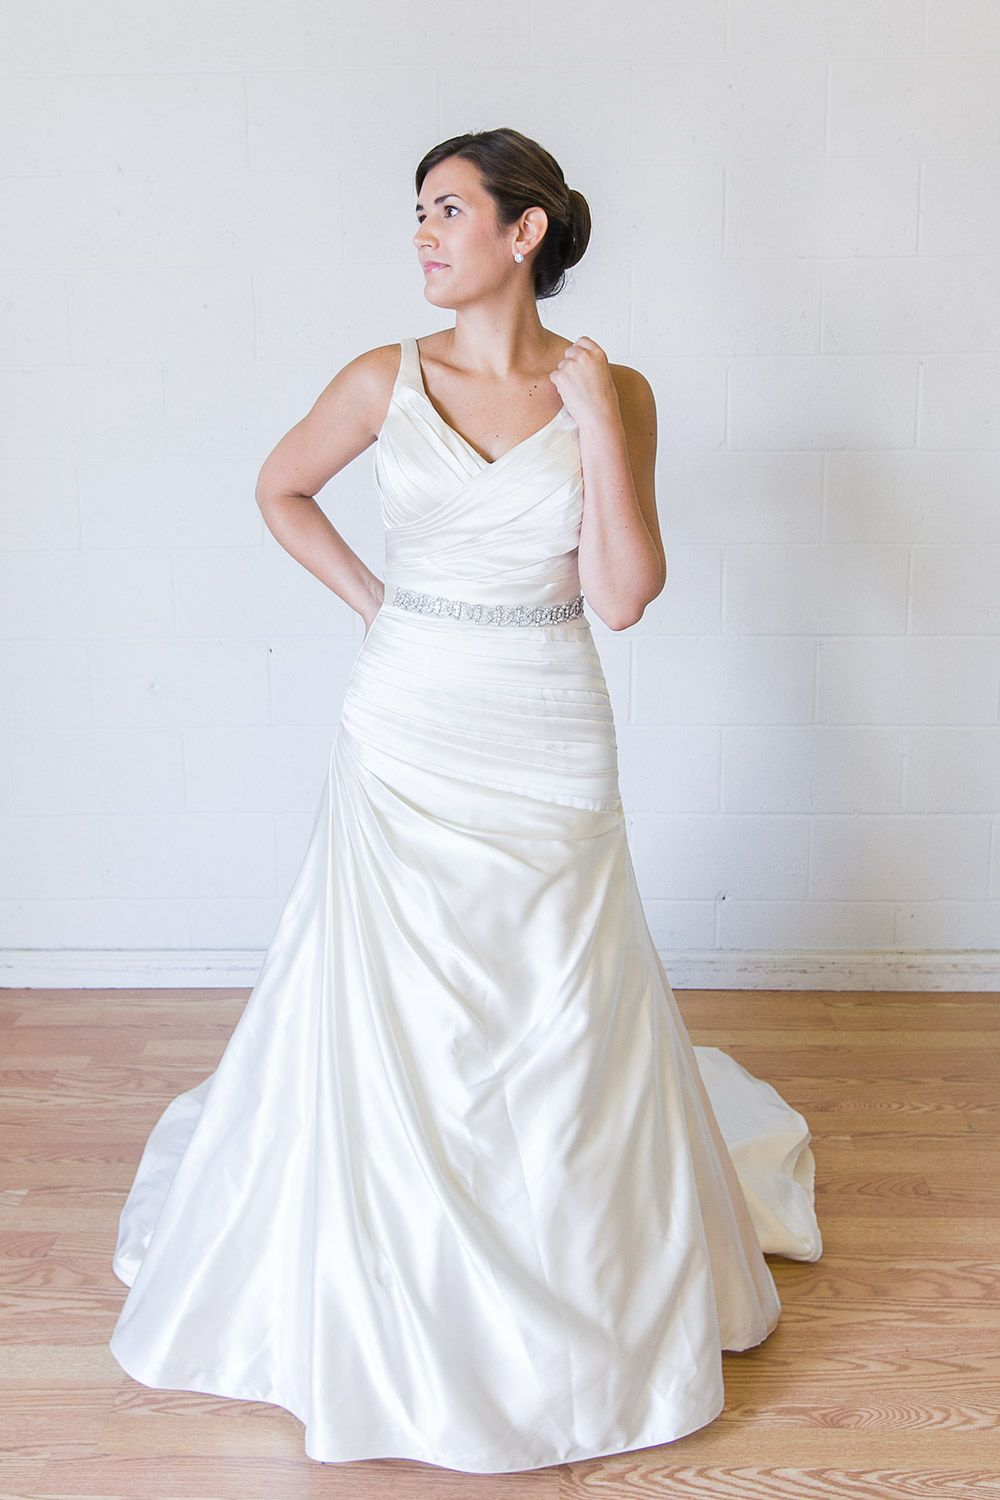 Renting wedding dresses  Rent or buy this wedding dress online at BorrowingMagnolia Save